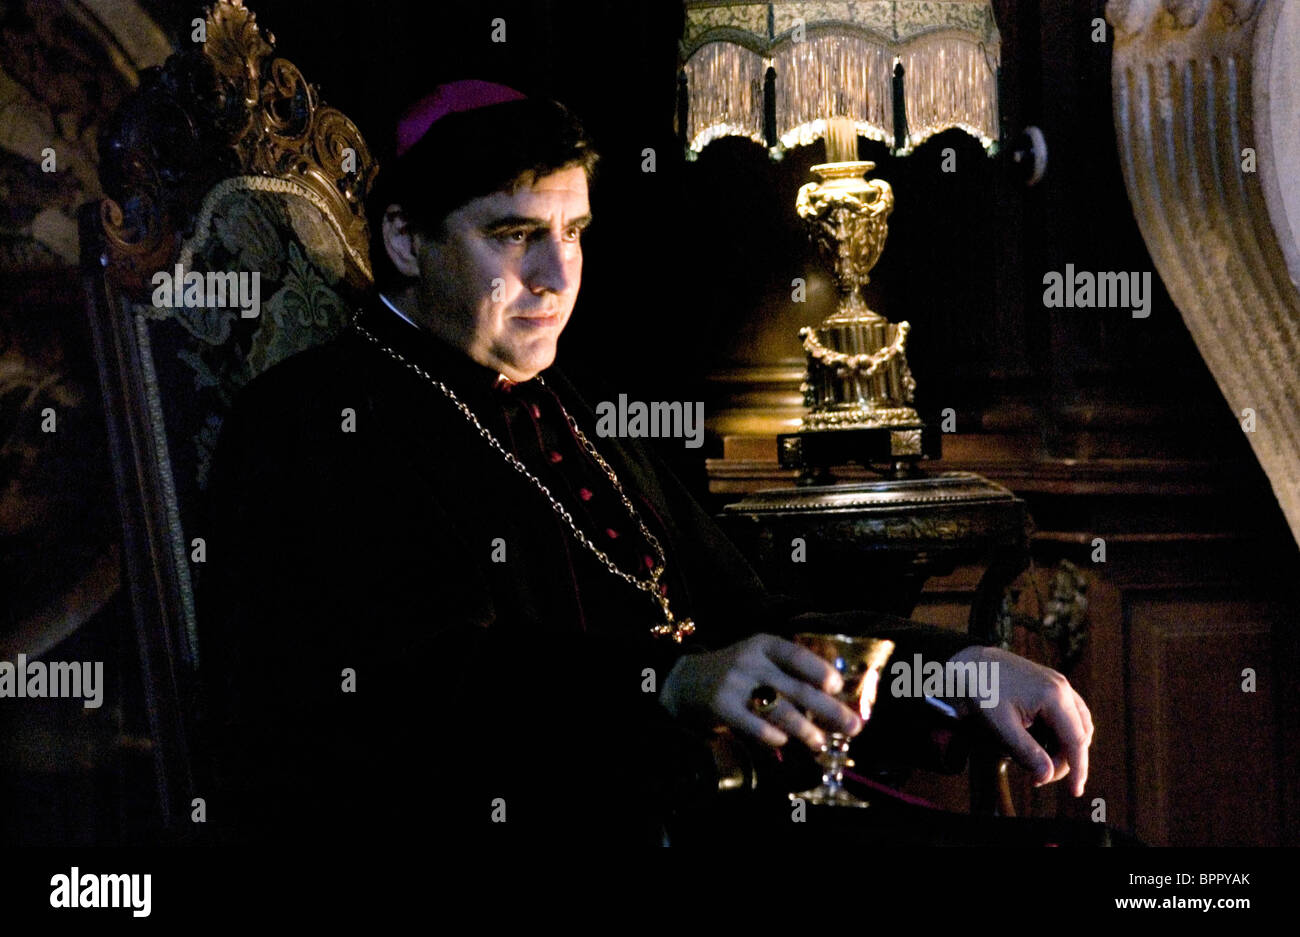 Alfred Molina The Da Vinci Code The Davinci Code 2006 Stock Photo Alamy